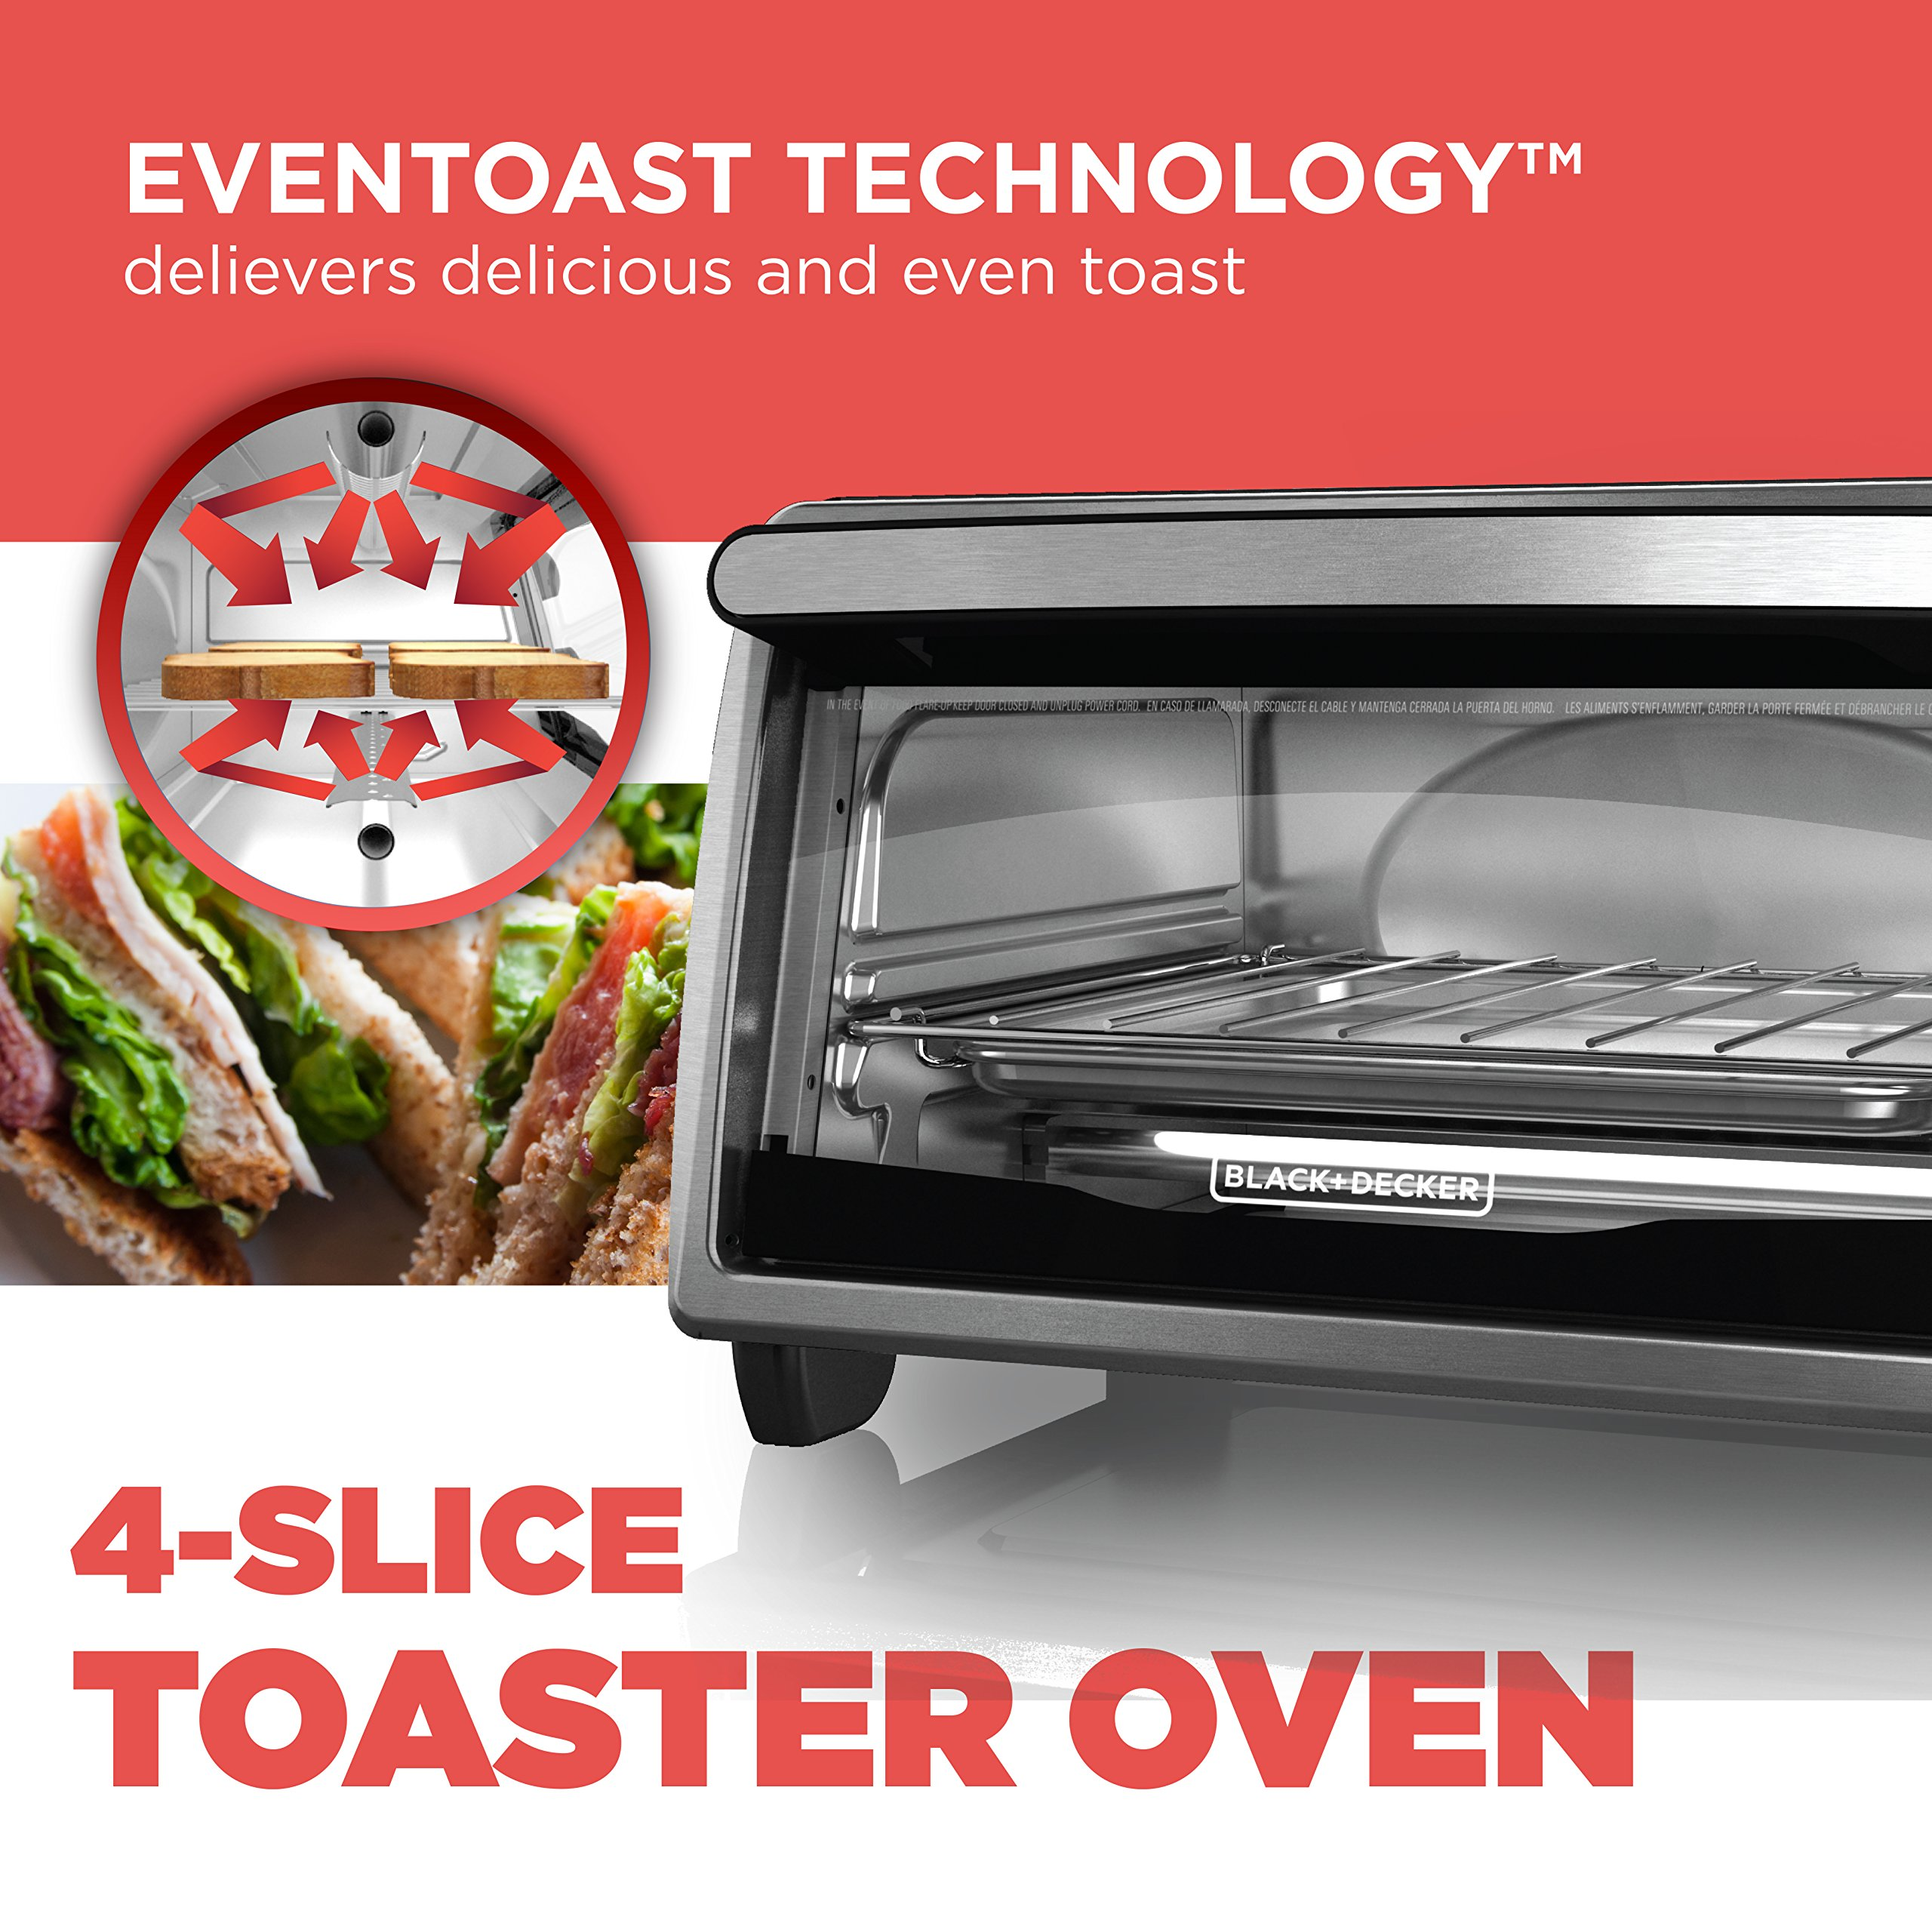 BLACK+DECKER 4-Slice Toaster Oven, Stainless Steel, TO1303SB by BLACK+DECKER (Image #2)